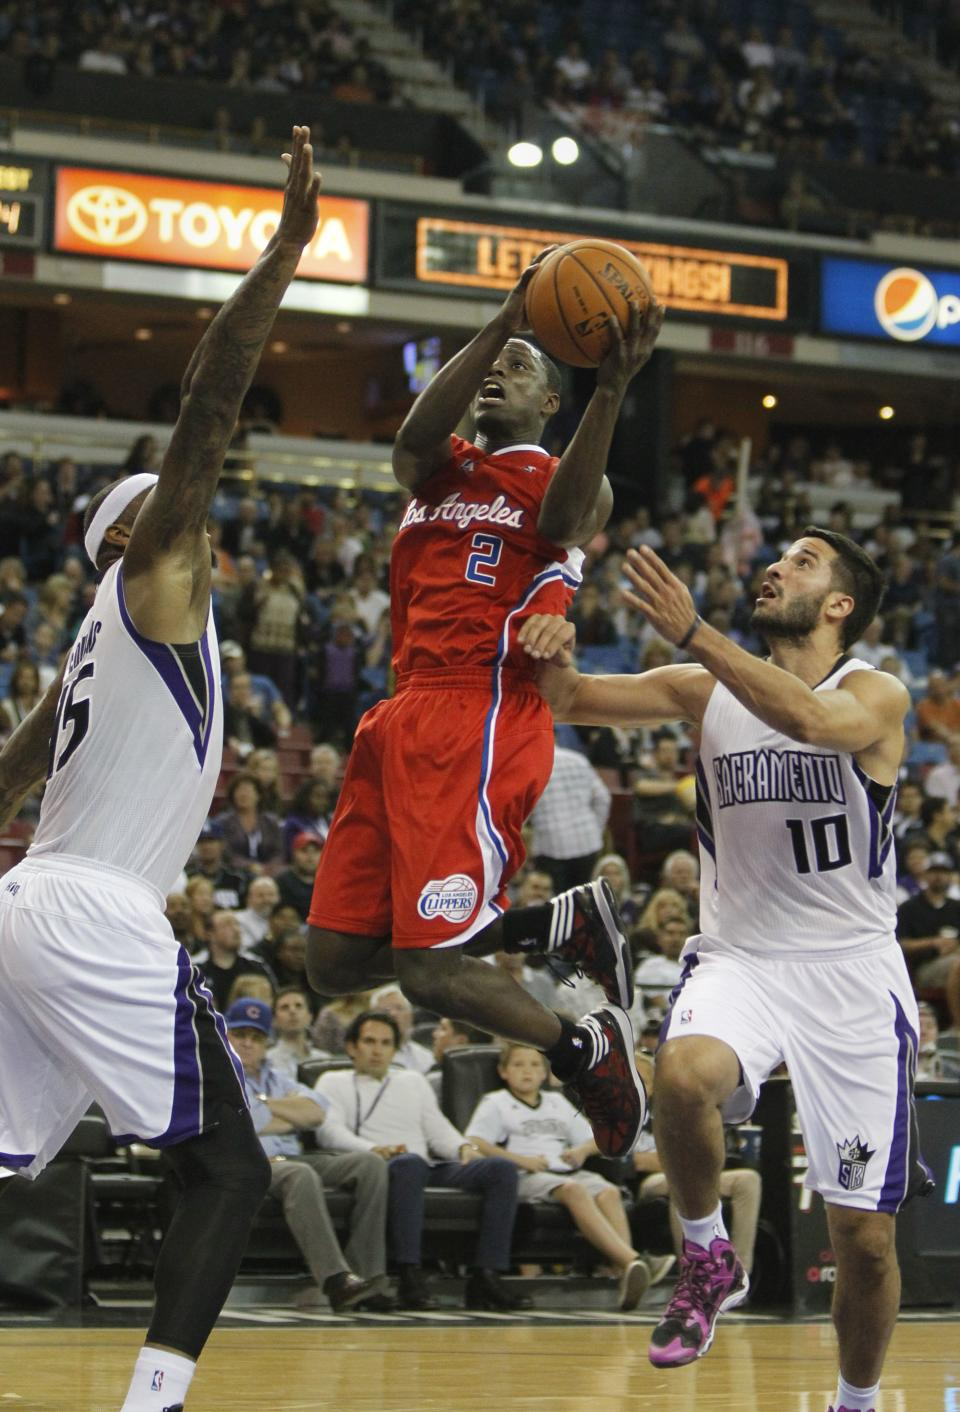 Kings beat Clippers in preseason